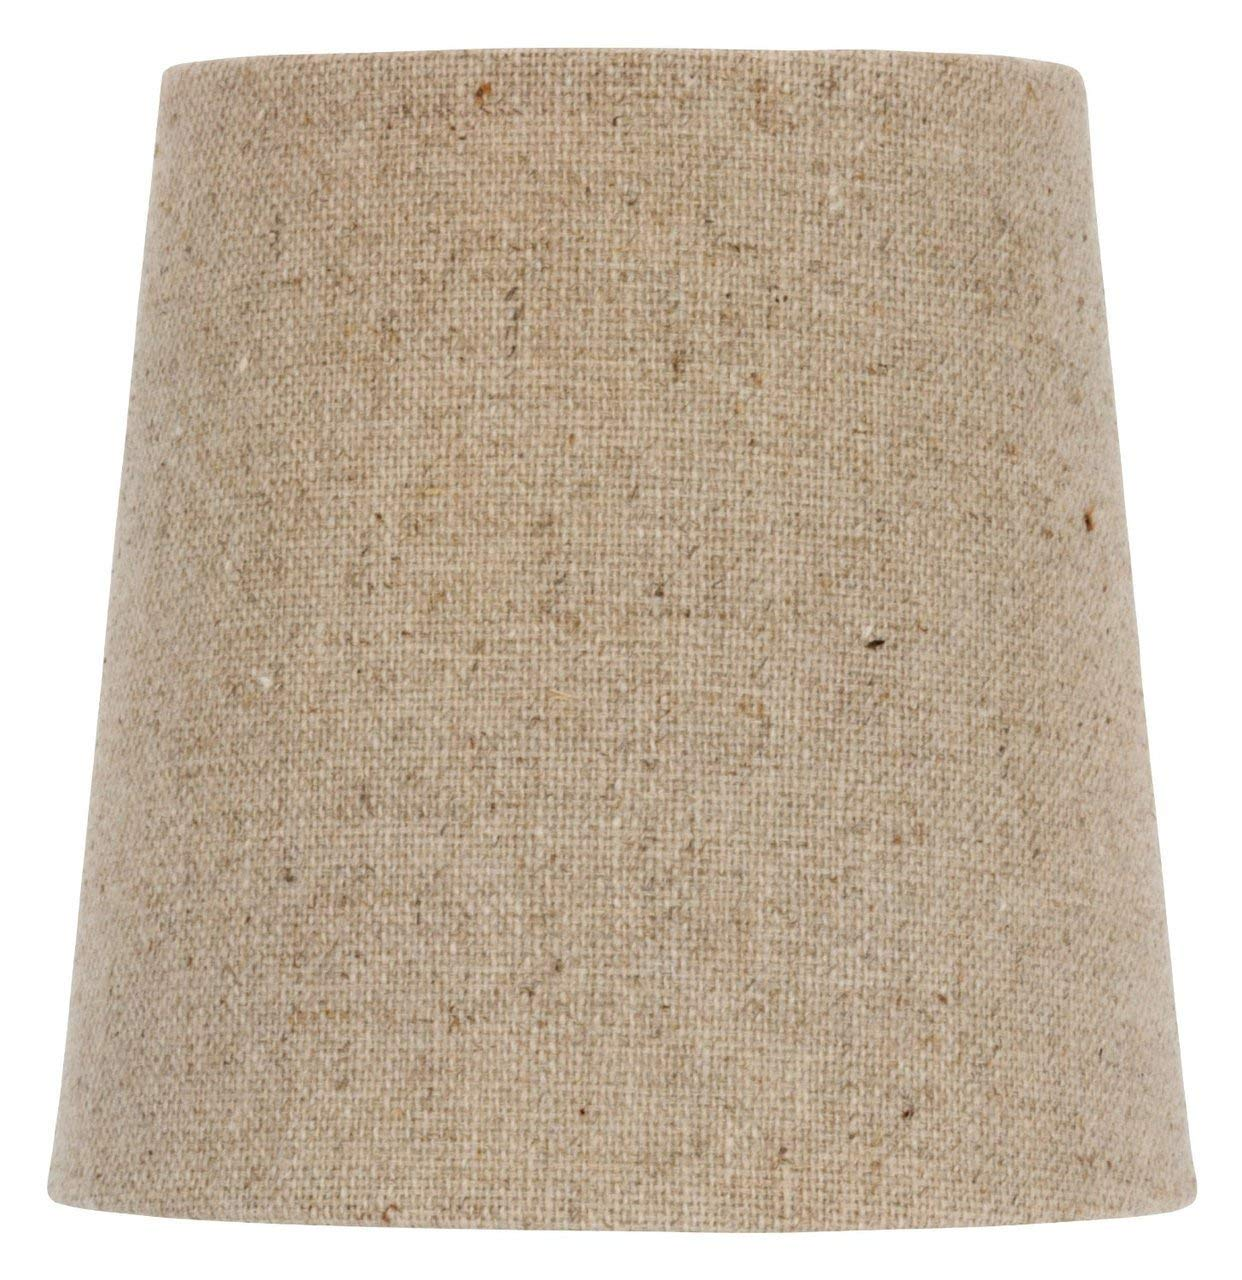 Upgradelights 4 Inch Retro Drum Clip On Chandelier Lamp Shade in Beige Linen 3x4x4